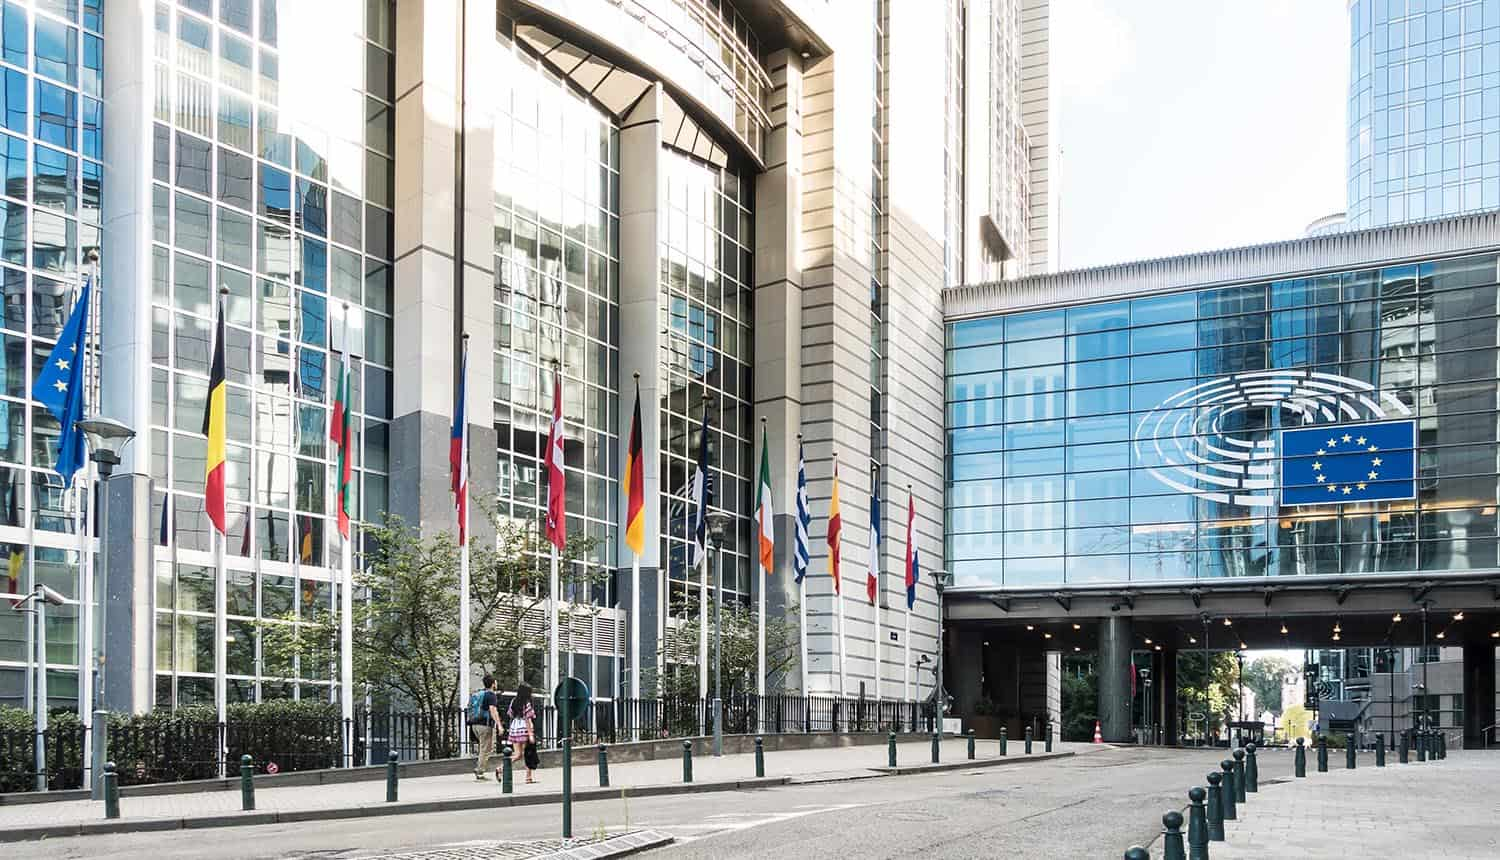 Exterior of the building of the European Parliament showing Digital Services Act impact on Big Tech